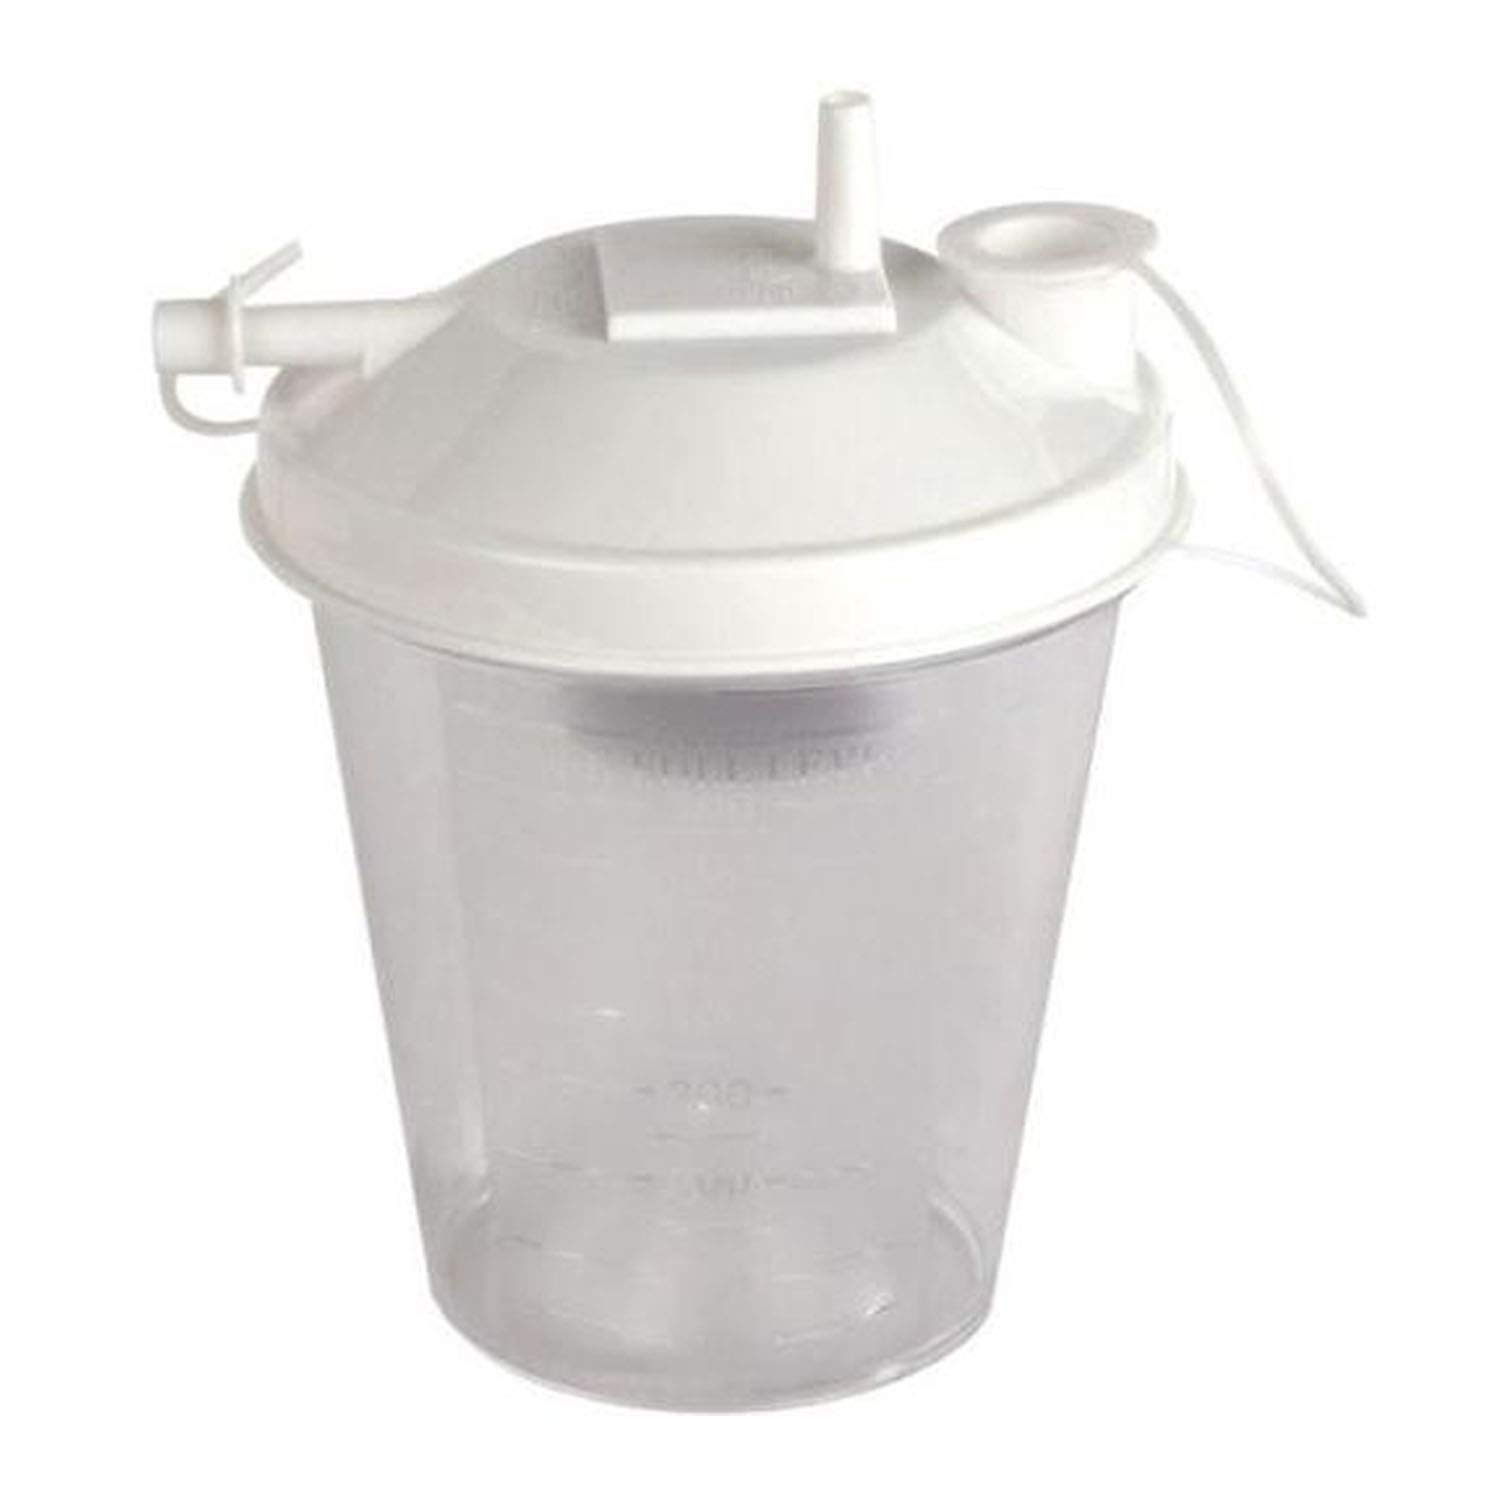 800cc Universal Suction Canister with 1/4'' Tubing, Suction Tubing Connector, Bacteria Filter